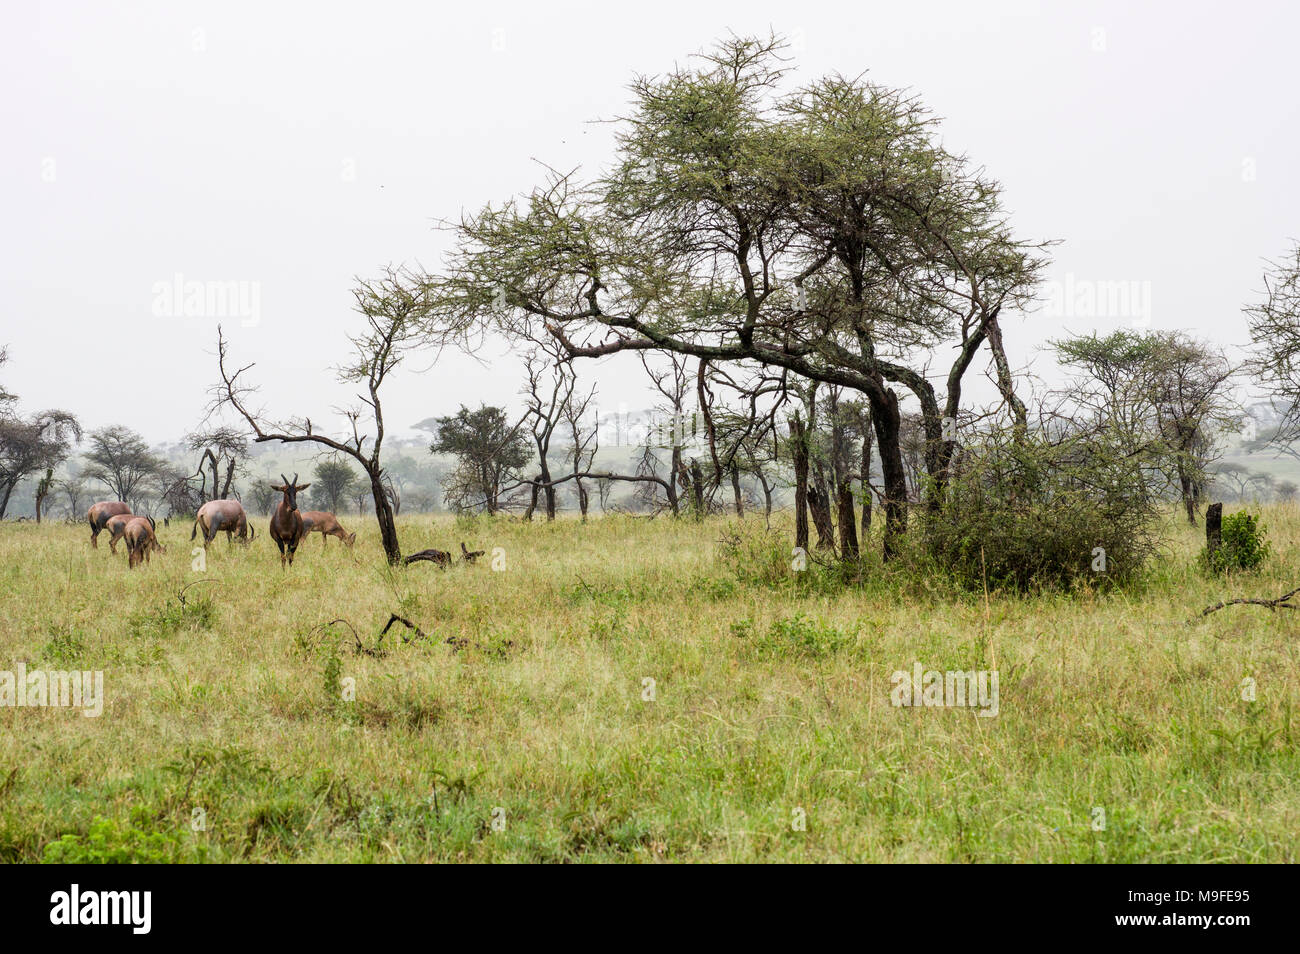 a small herd of topi - damaliscus lunatus jimela - grazing in long grass against a misty landscape with acacia trees one alpha male - Stock Image